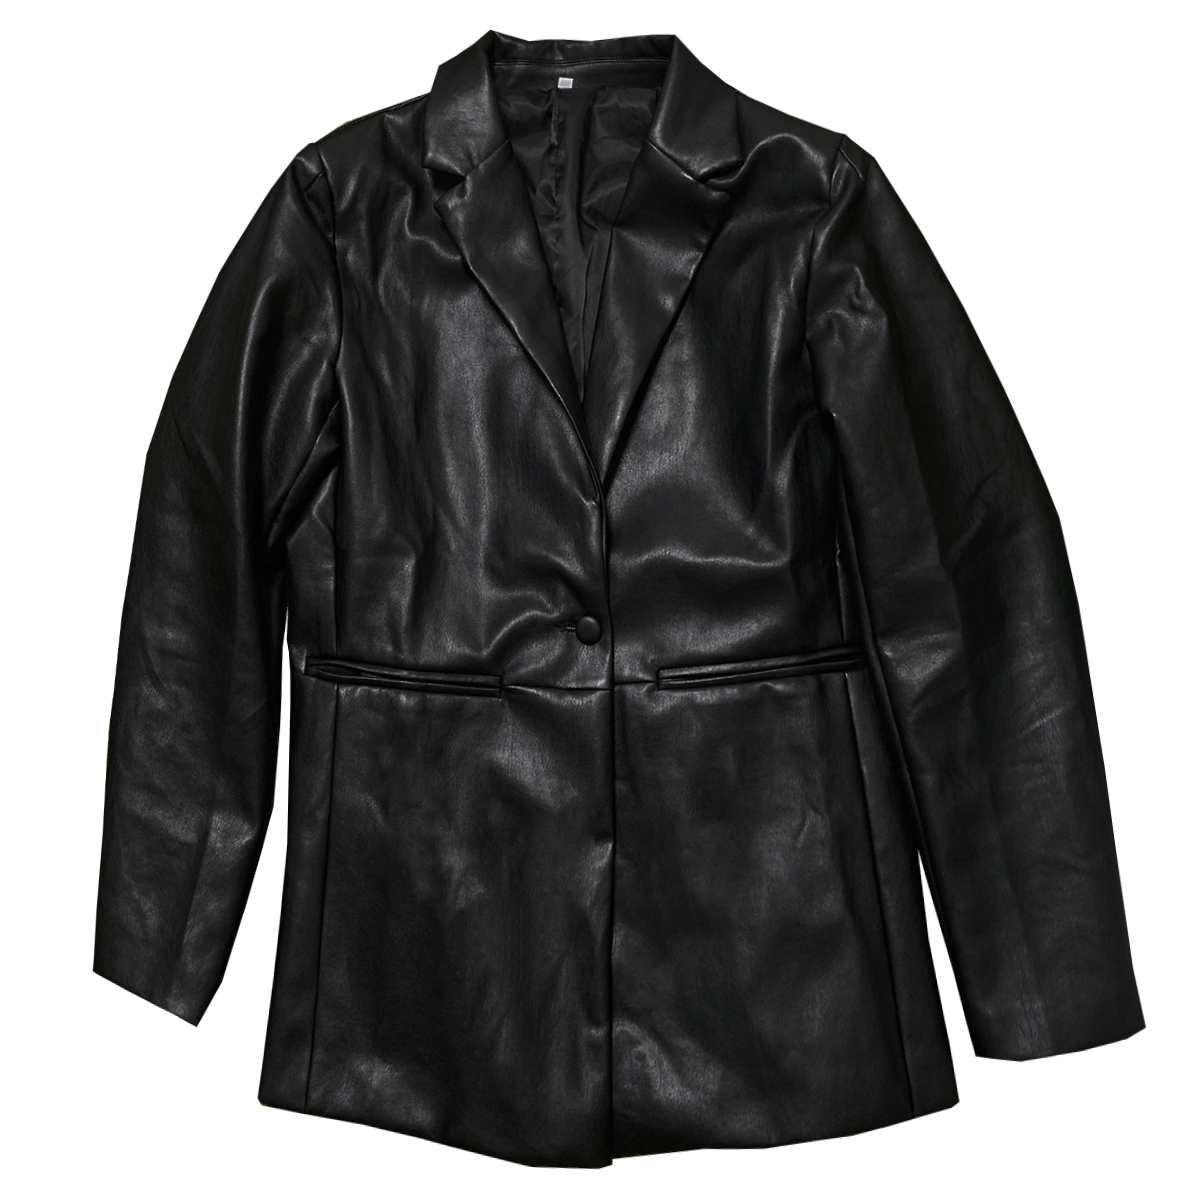 Oversize Leather Coat